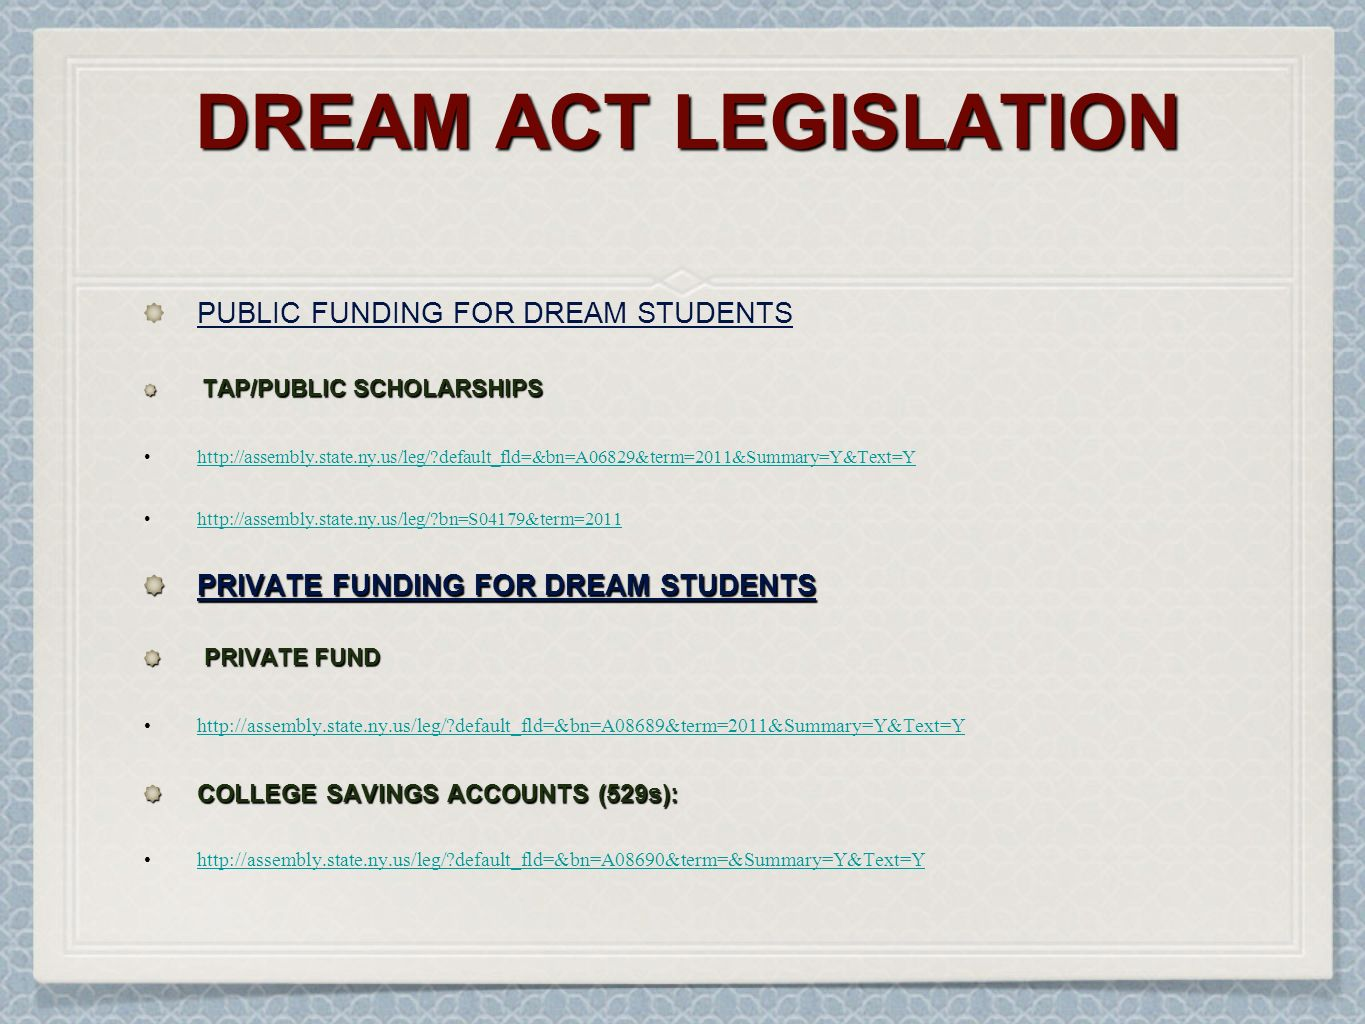 DREAM ACT LEGISLATION PUBLIC FUNDING FOR DREAM STUDENTS TAP/PUBLIC SCHOLARSHIPS TAP/PUBLIC SCHOLARSHIPS http://assembly.state.ny.us/leg/ default_fld=&bn=A06829&term=2011&Summary=Y&Text=Y http://assembly.state.ny.us/leg/ bn=S04179&term=2011 PRIVATE FUNDING FOR DREAM STUDENTS PRIVATE FUND PRIVATE FUND http://assembly.state.ny.us/leg/ default_fld=&bn=A08689&term=2011&Summary=Y&Text=Y COLLEGE SAVINGS ACCOUNTS (529s): http://assembly.state.ny.us/leg/ default_fld=&bn=A08690&term=&Summary=Y&Text=Y